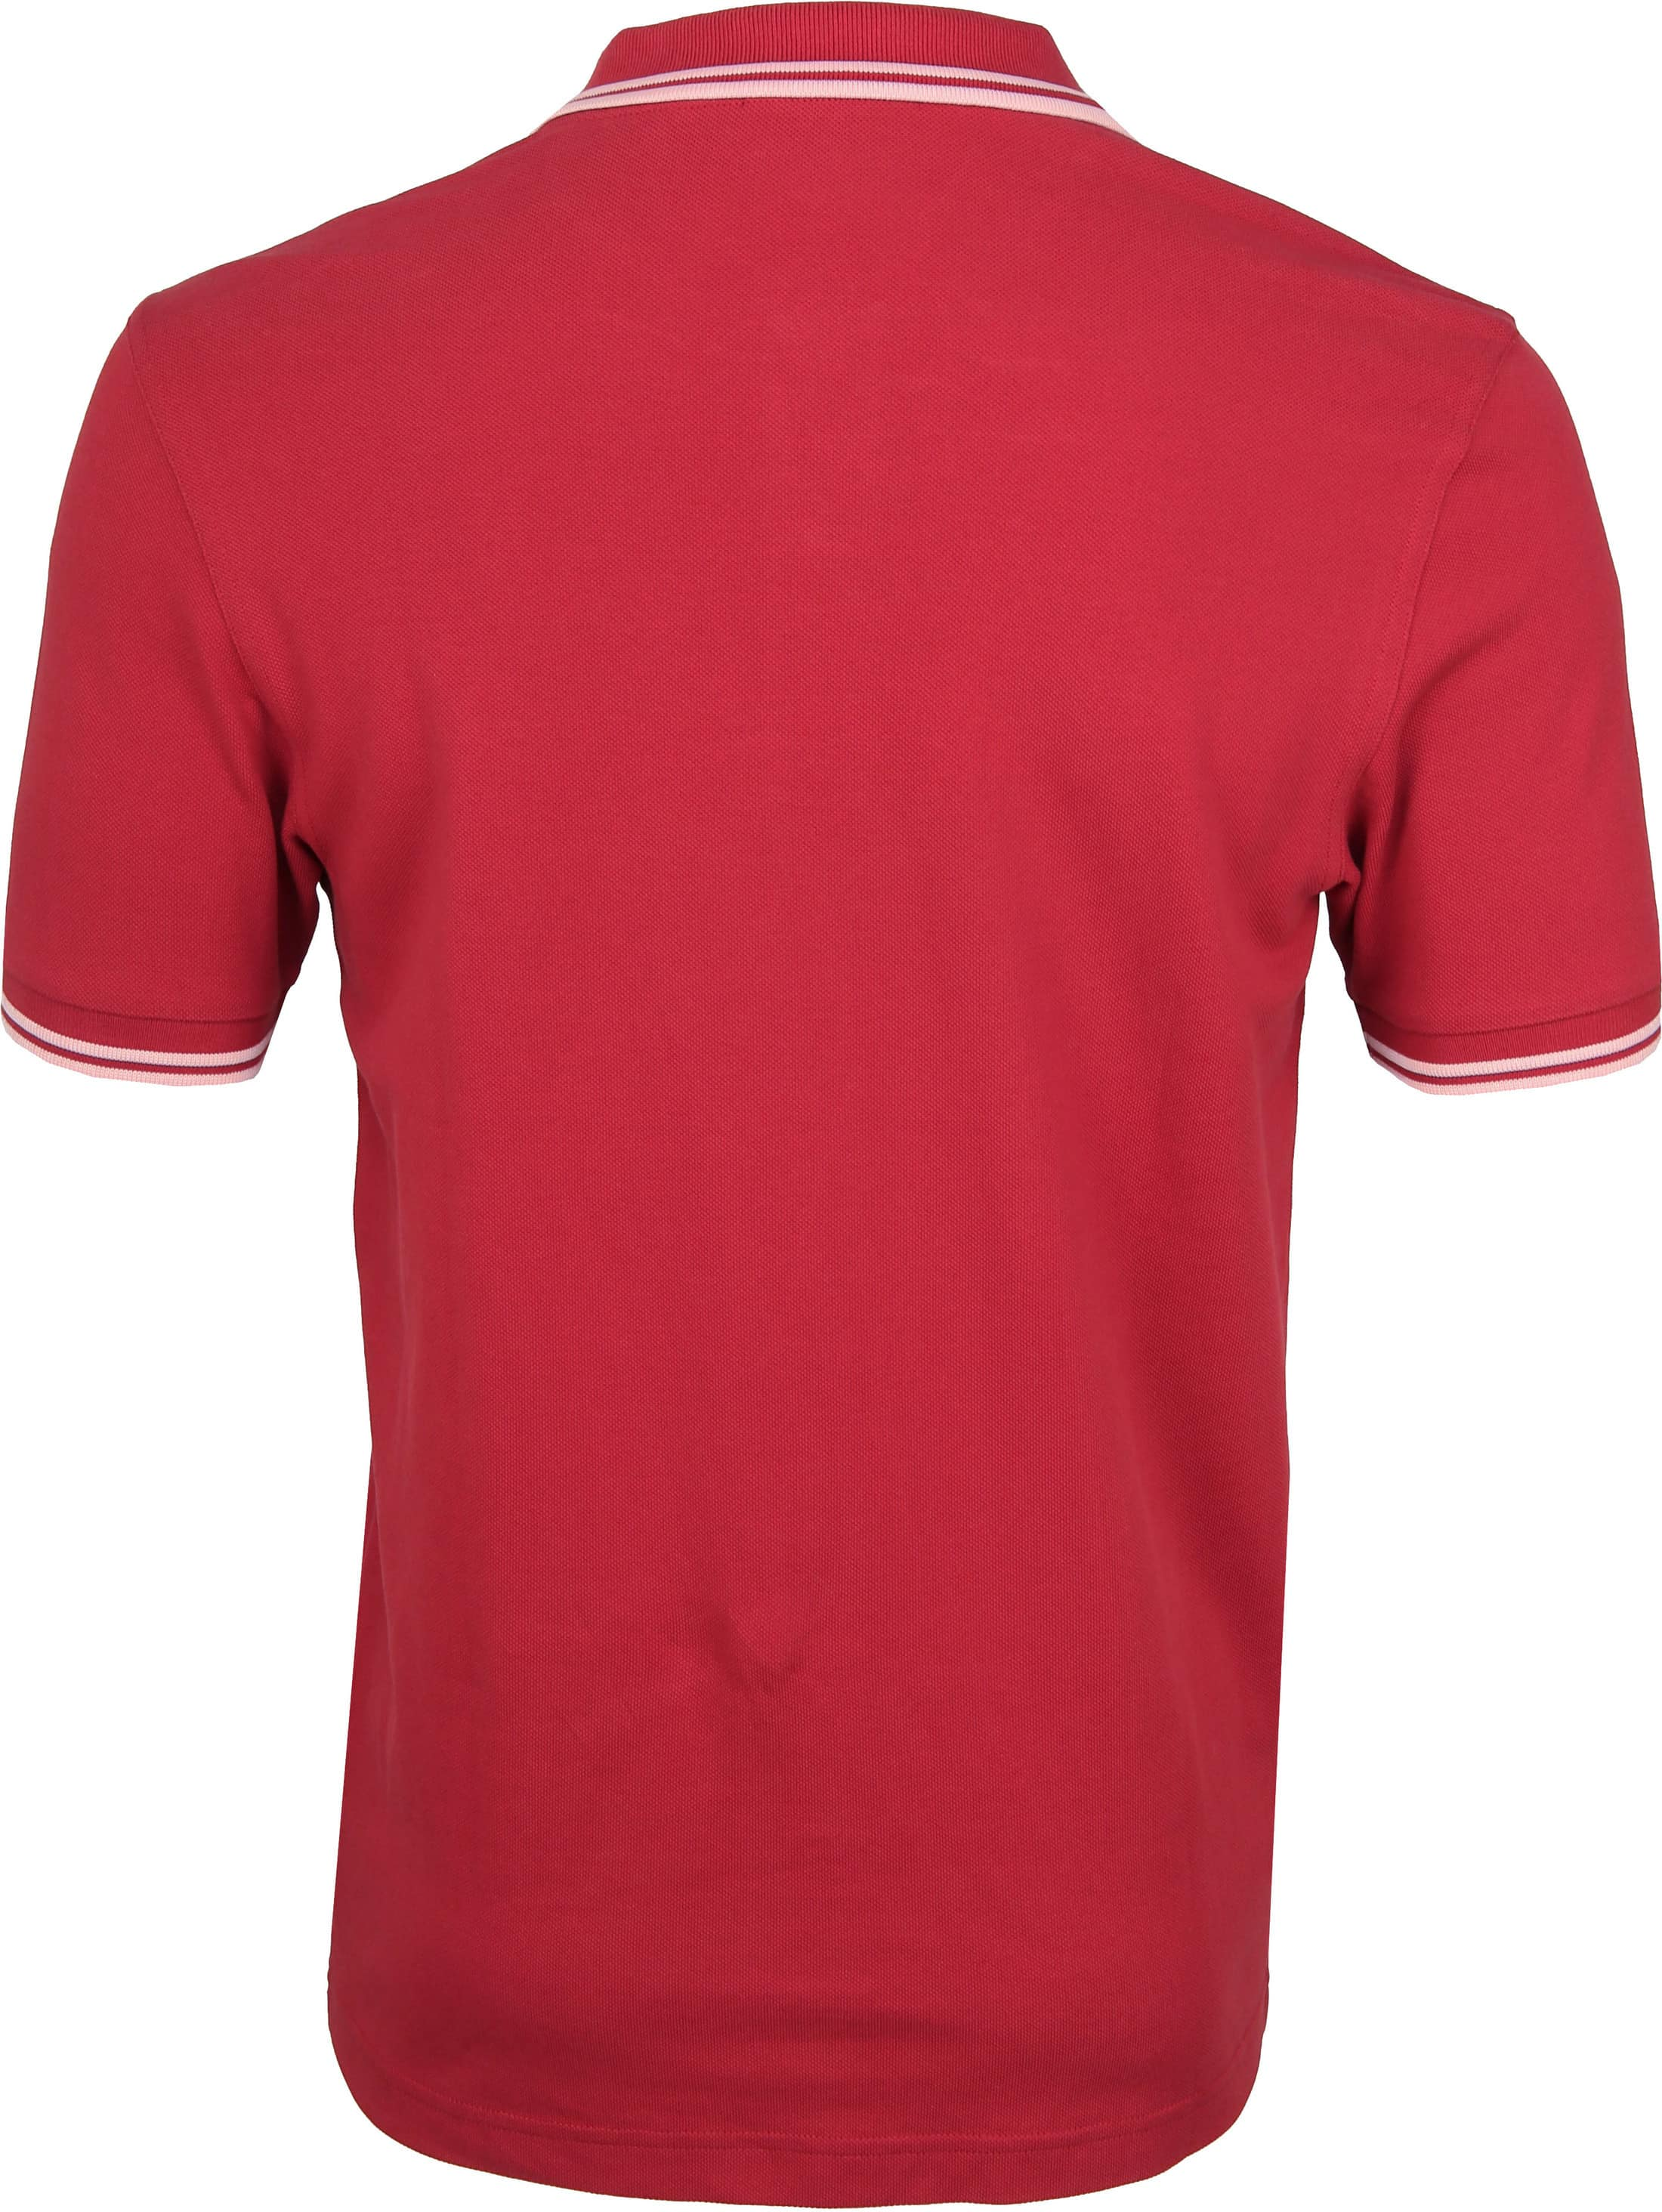 Fred Perry Poloshirt Rot 541 foto 2